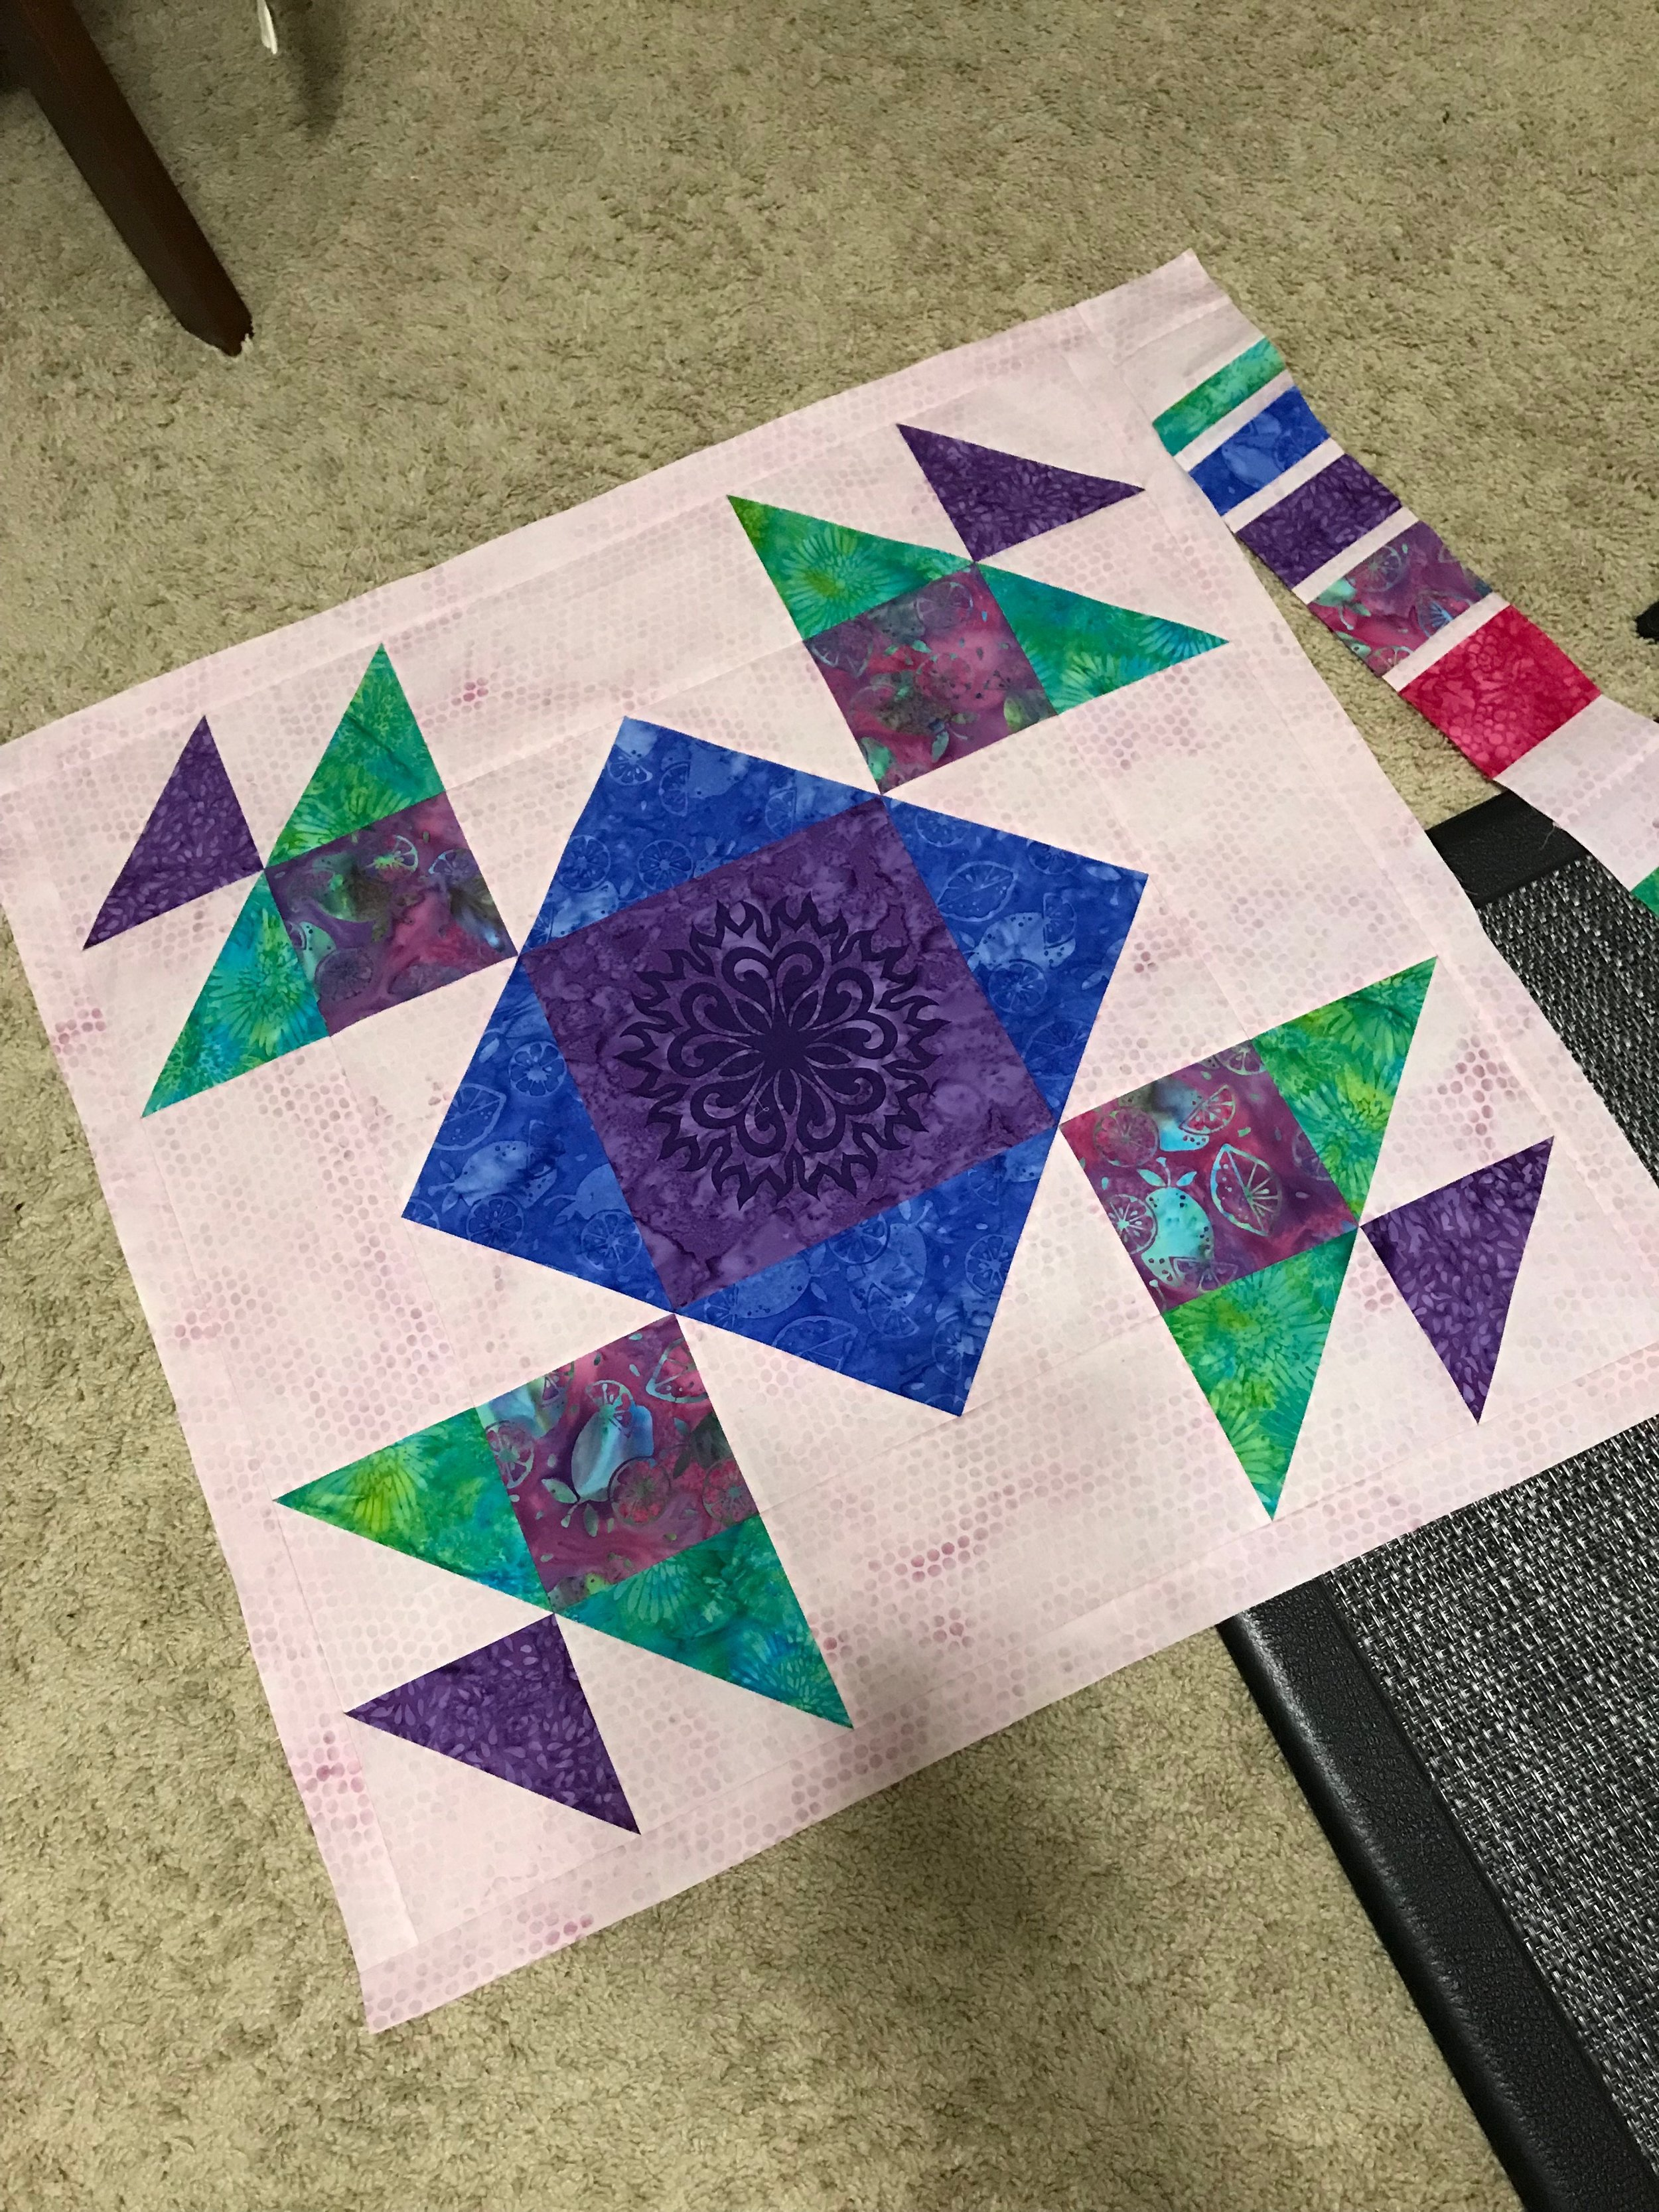 The first border had to be partially attached then the other borders were sewn on before the first one was finished.